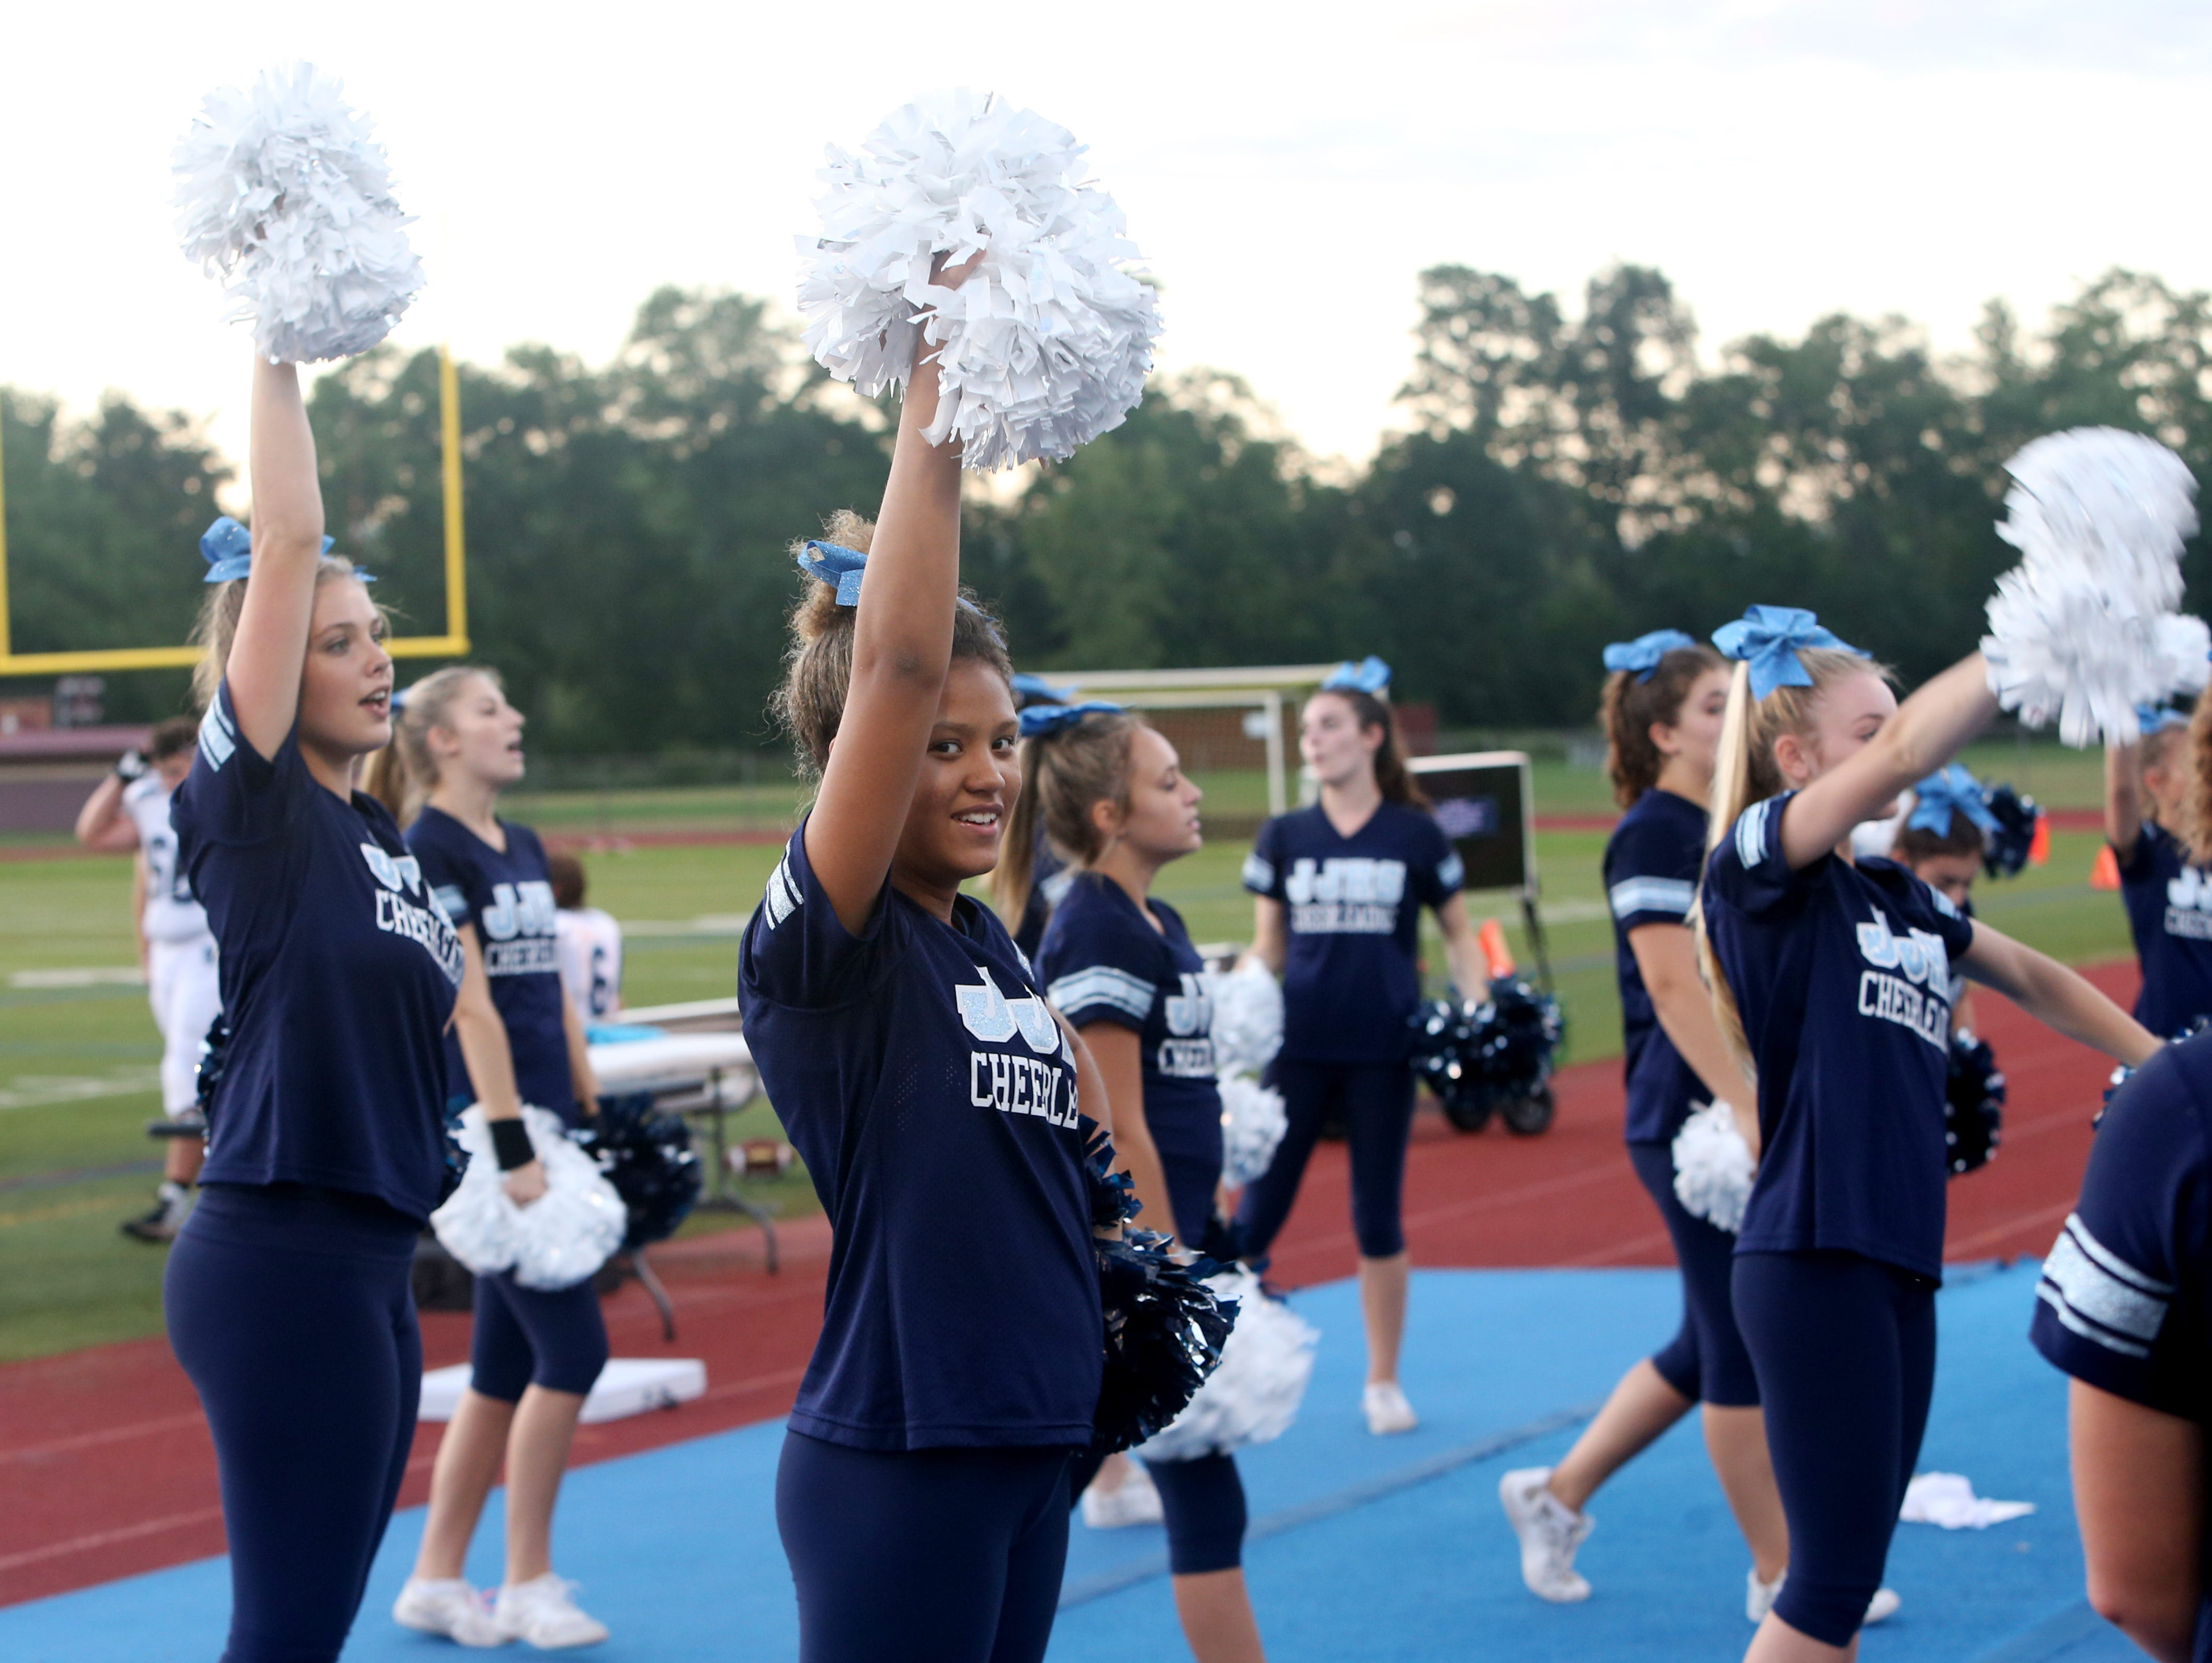 John Jay's cheerleaders perform during Friday's game between Arlington and John Jay in Freedom Plains on Sept 14, 2018.